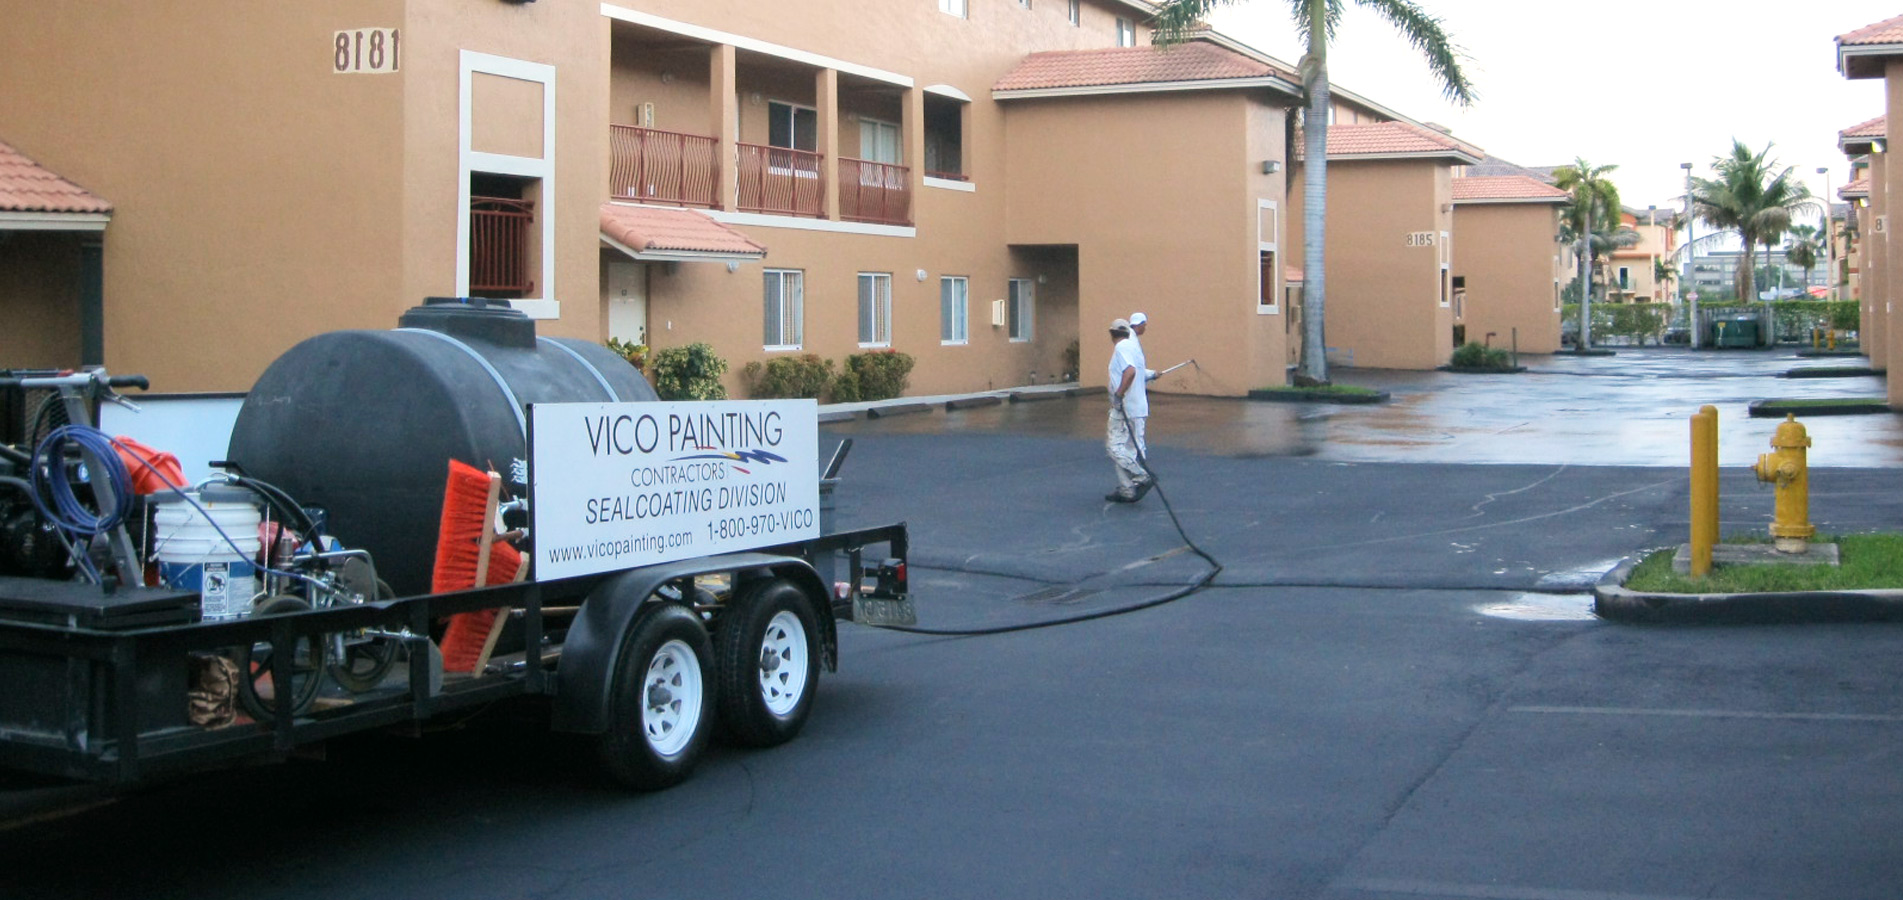 Vico Painting Contractors Sealcoating Division